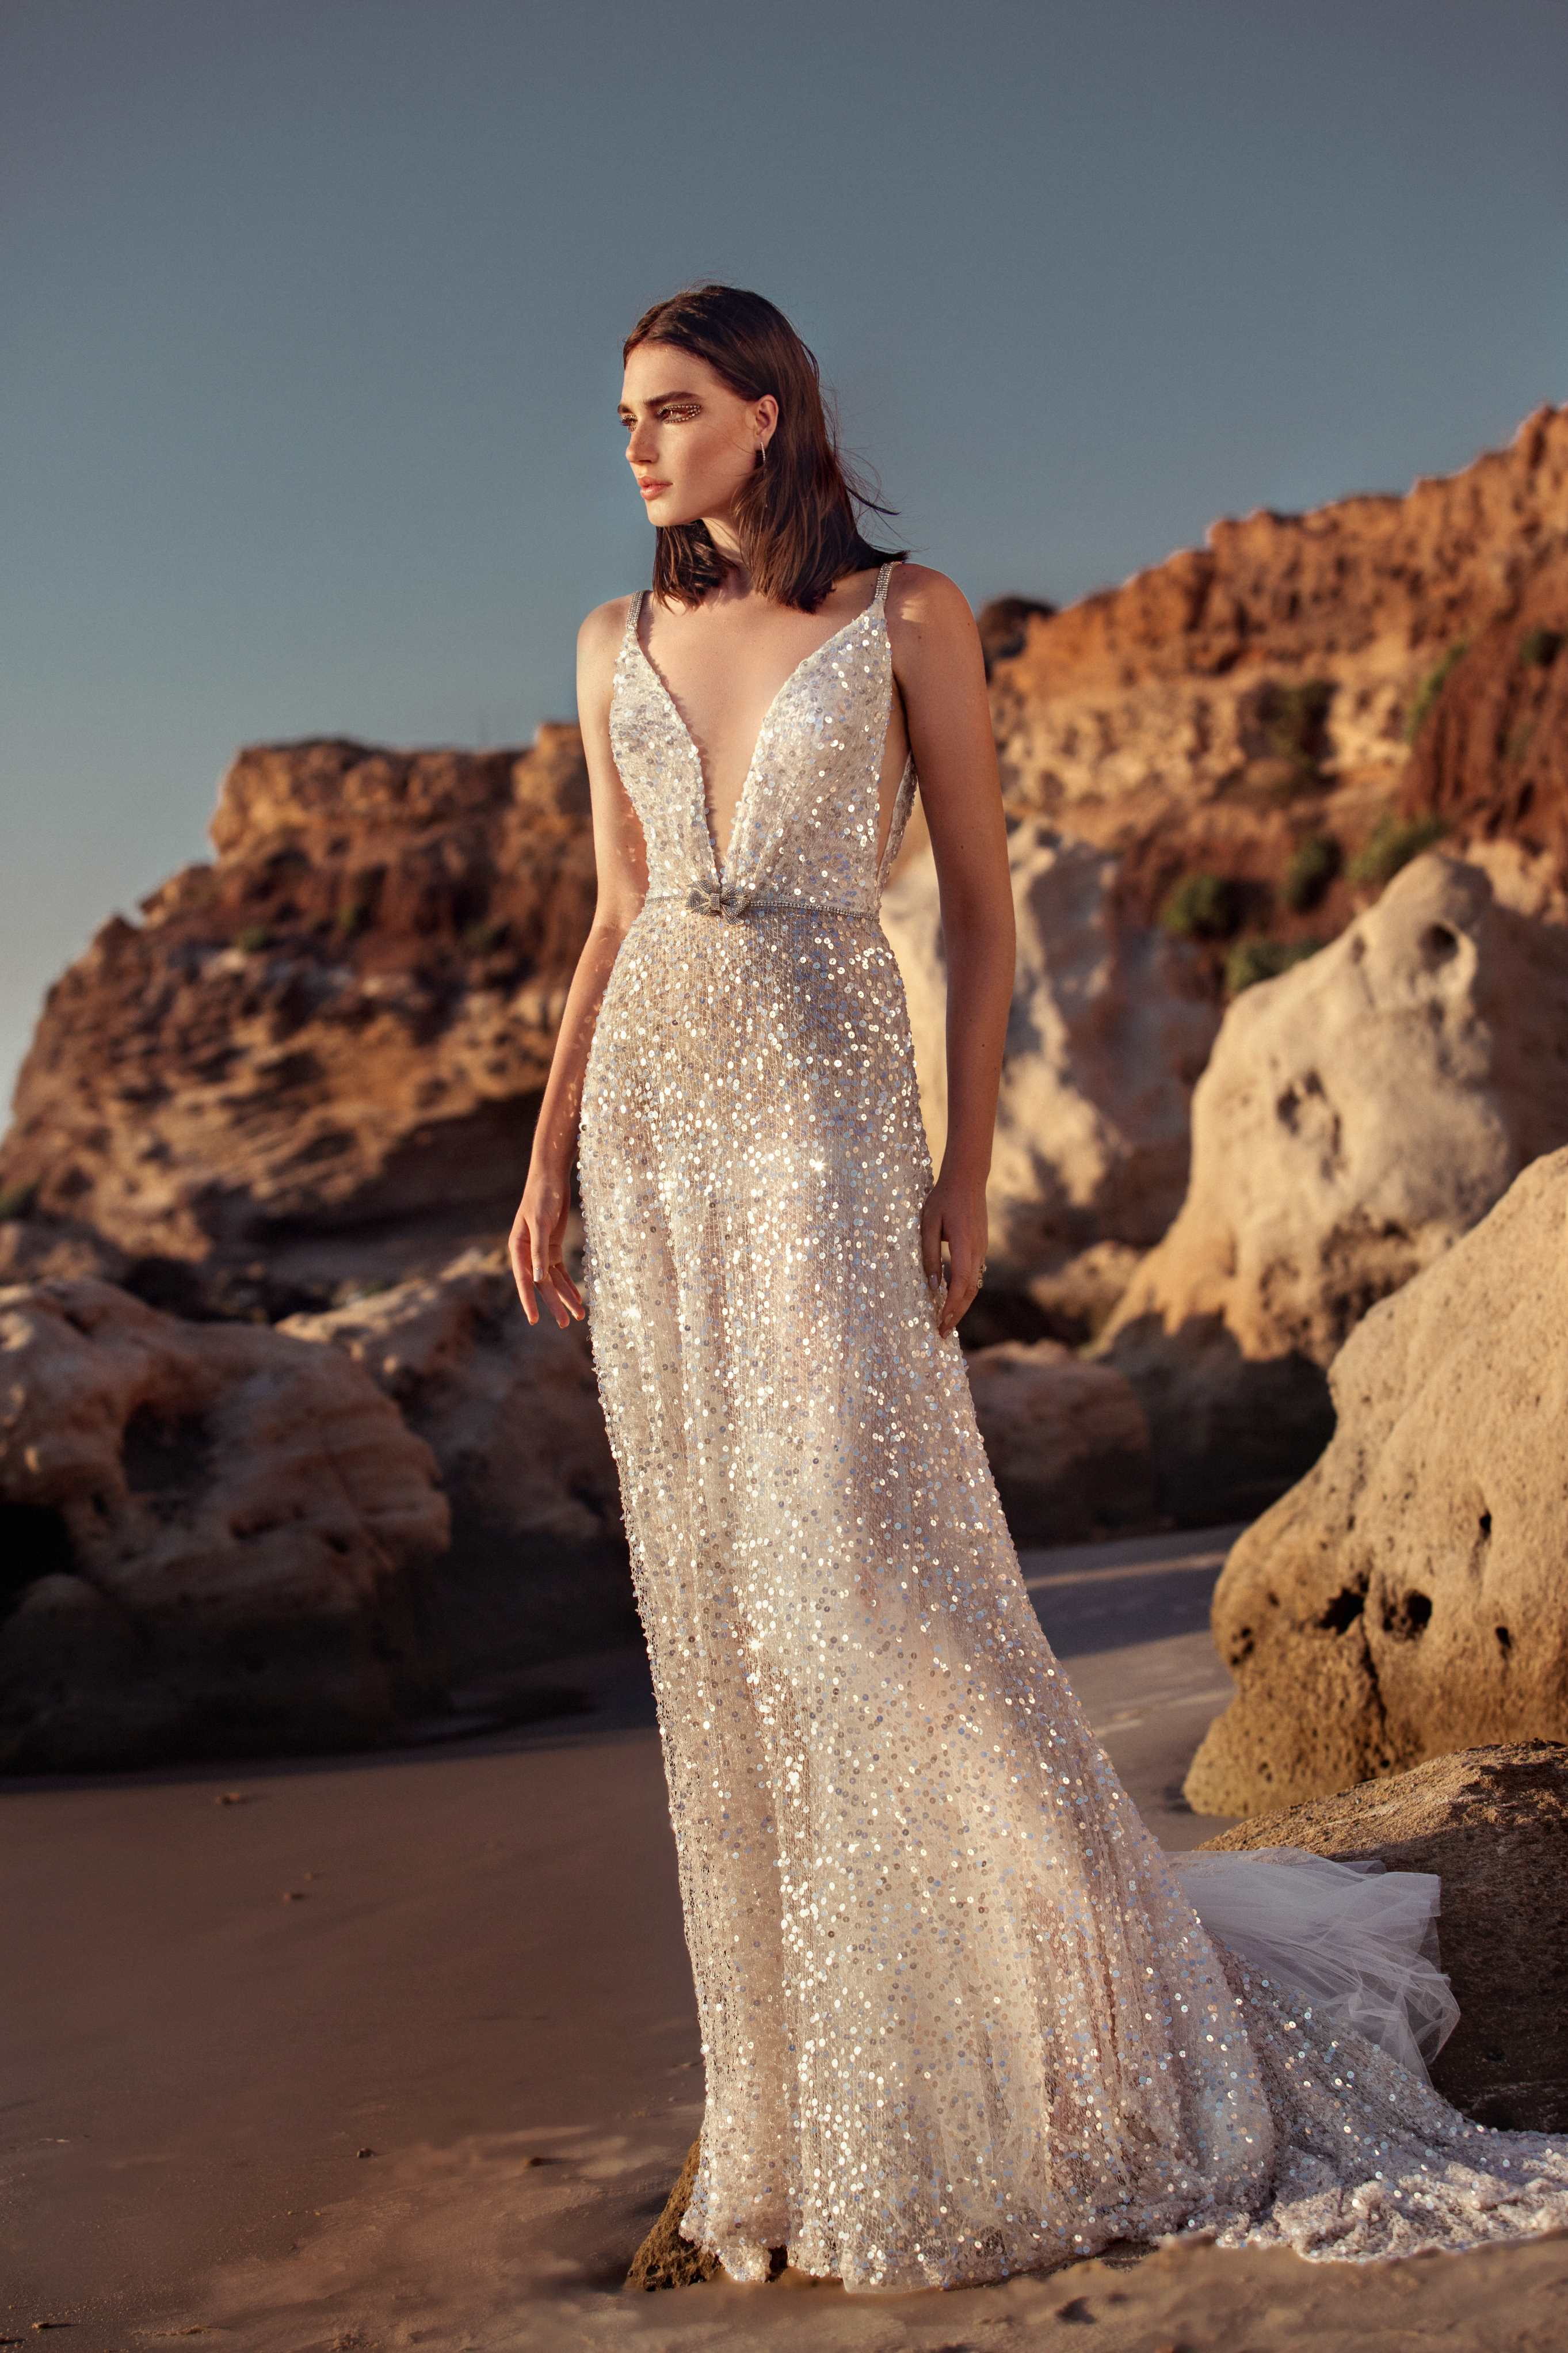 GALA 403 - Sparkle gown by Galia Lahav